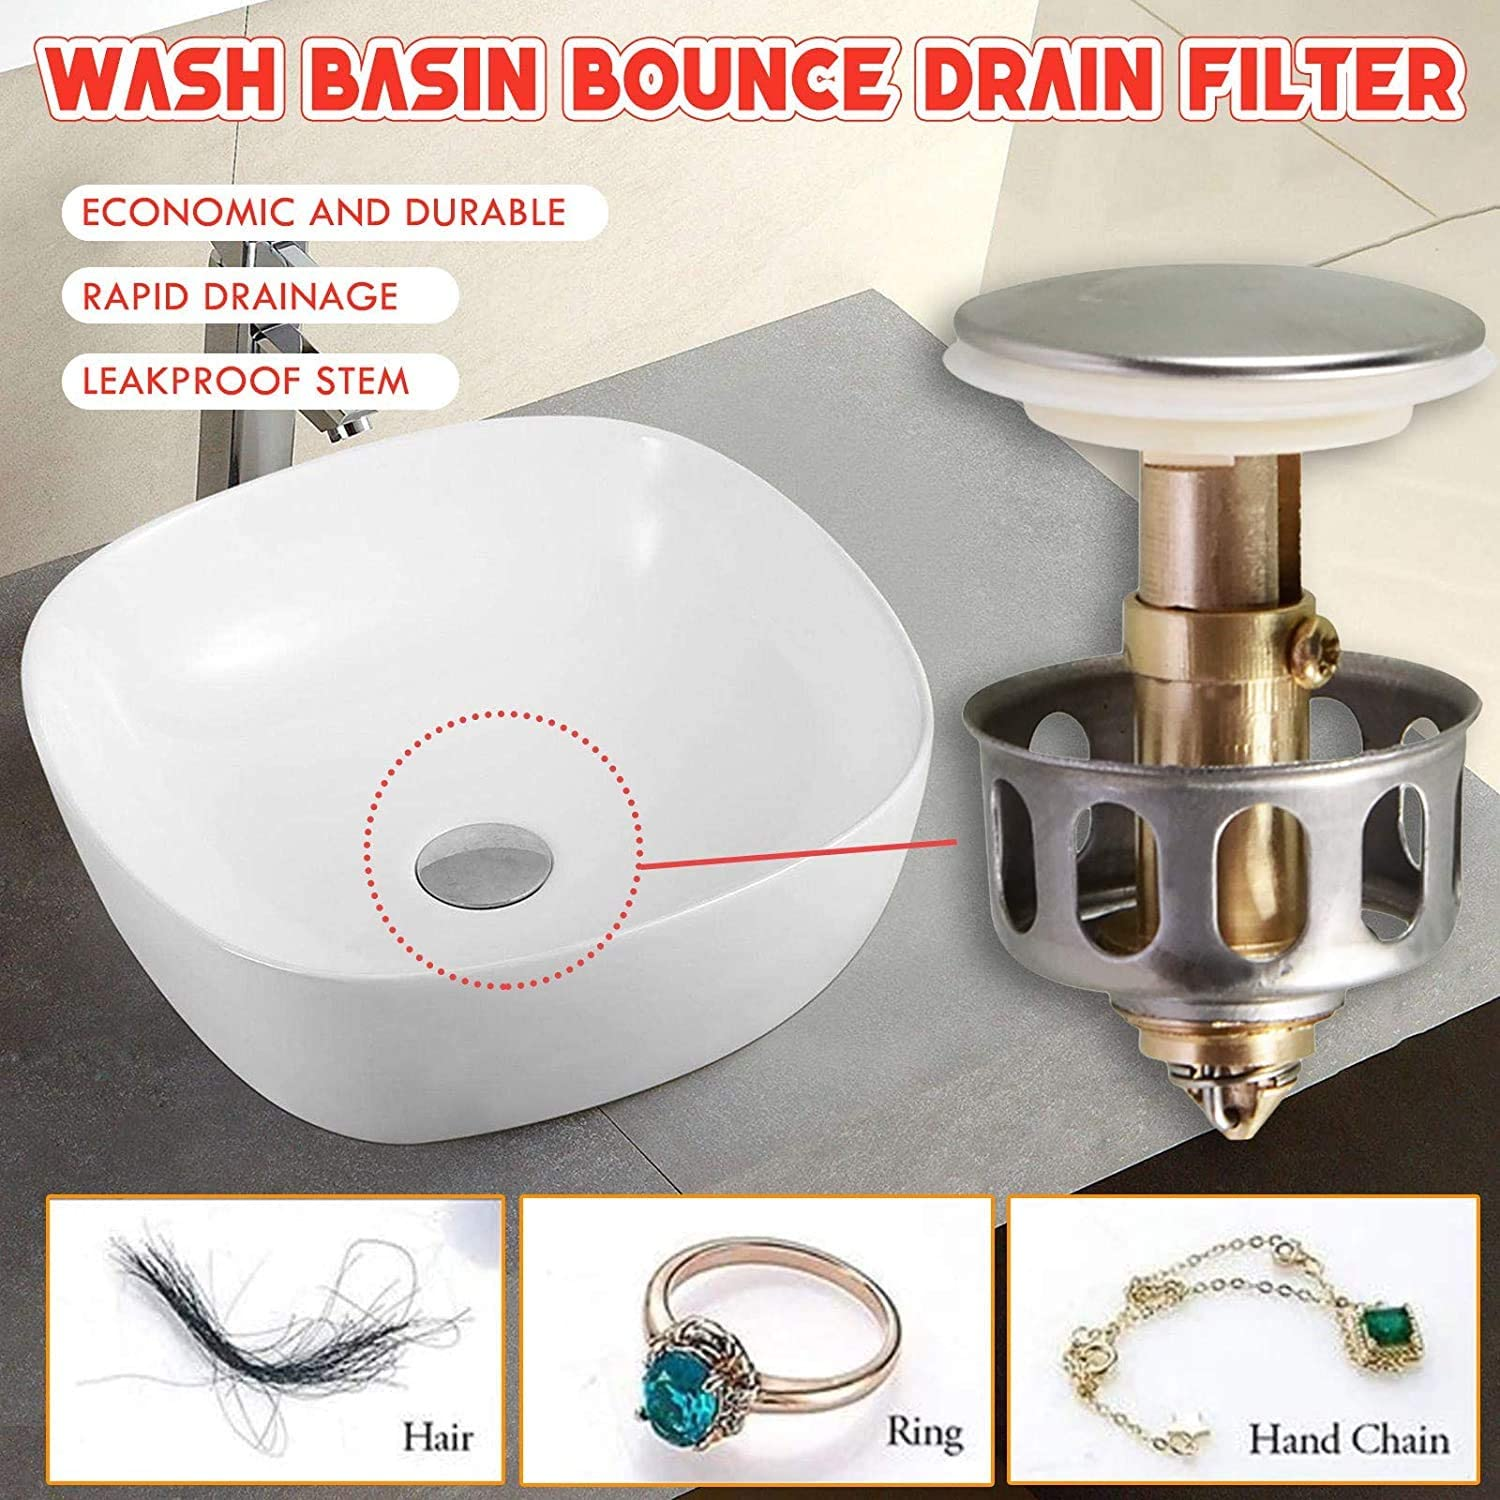 Universal Wash Basin Bounce Drain Filter With Anti-clogging Basket Sink Drainer